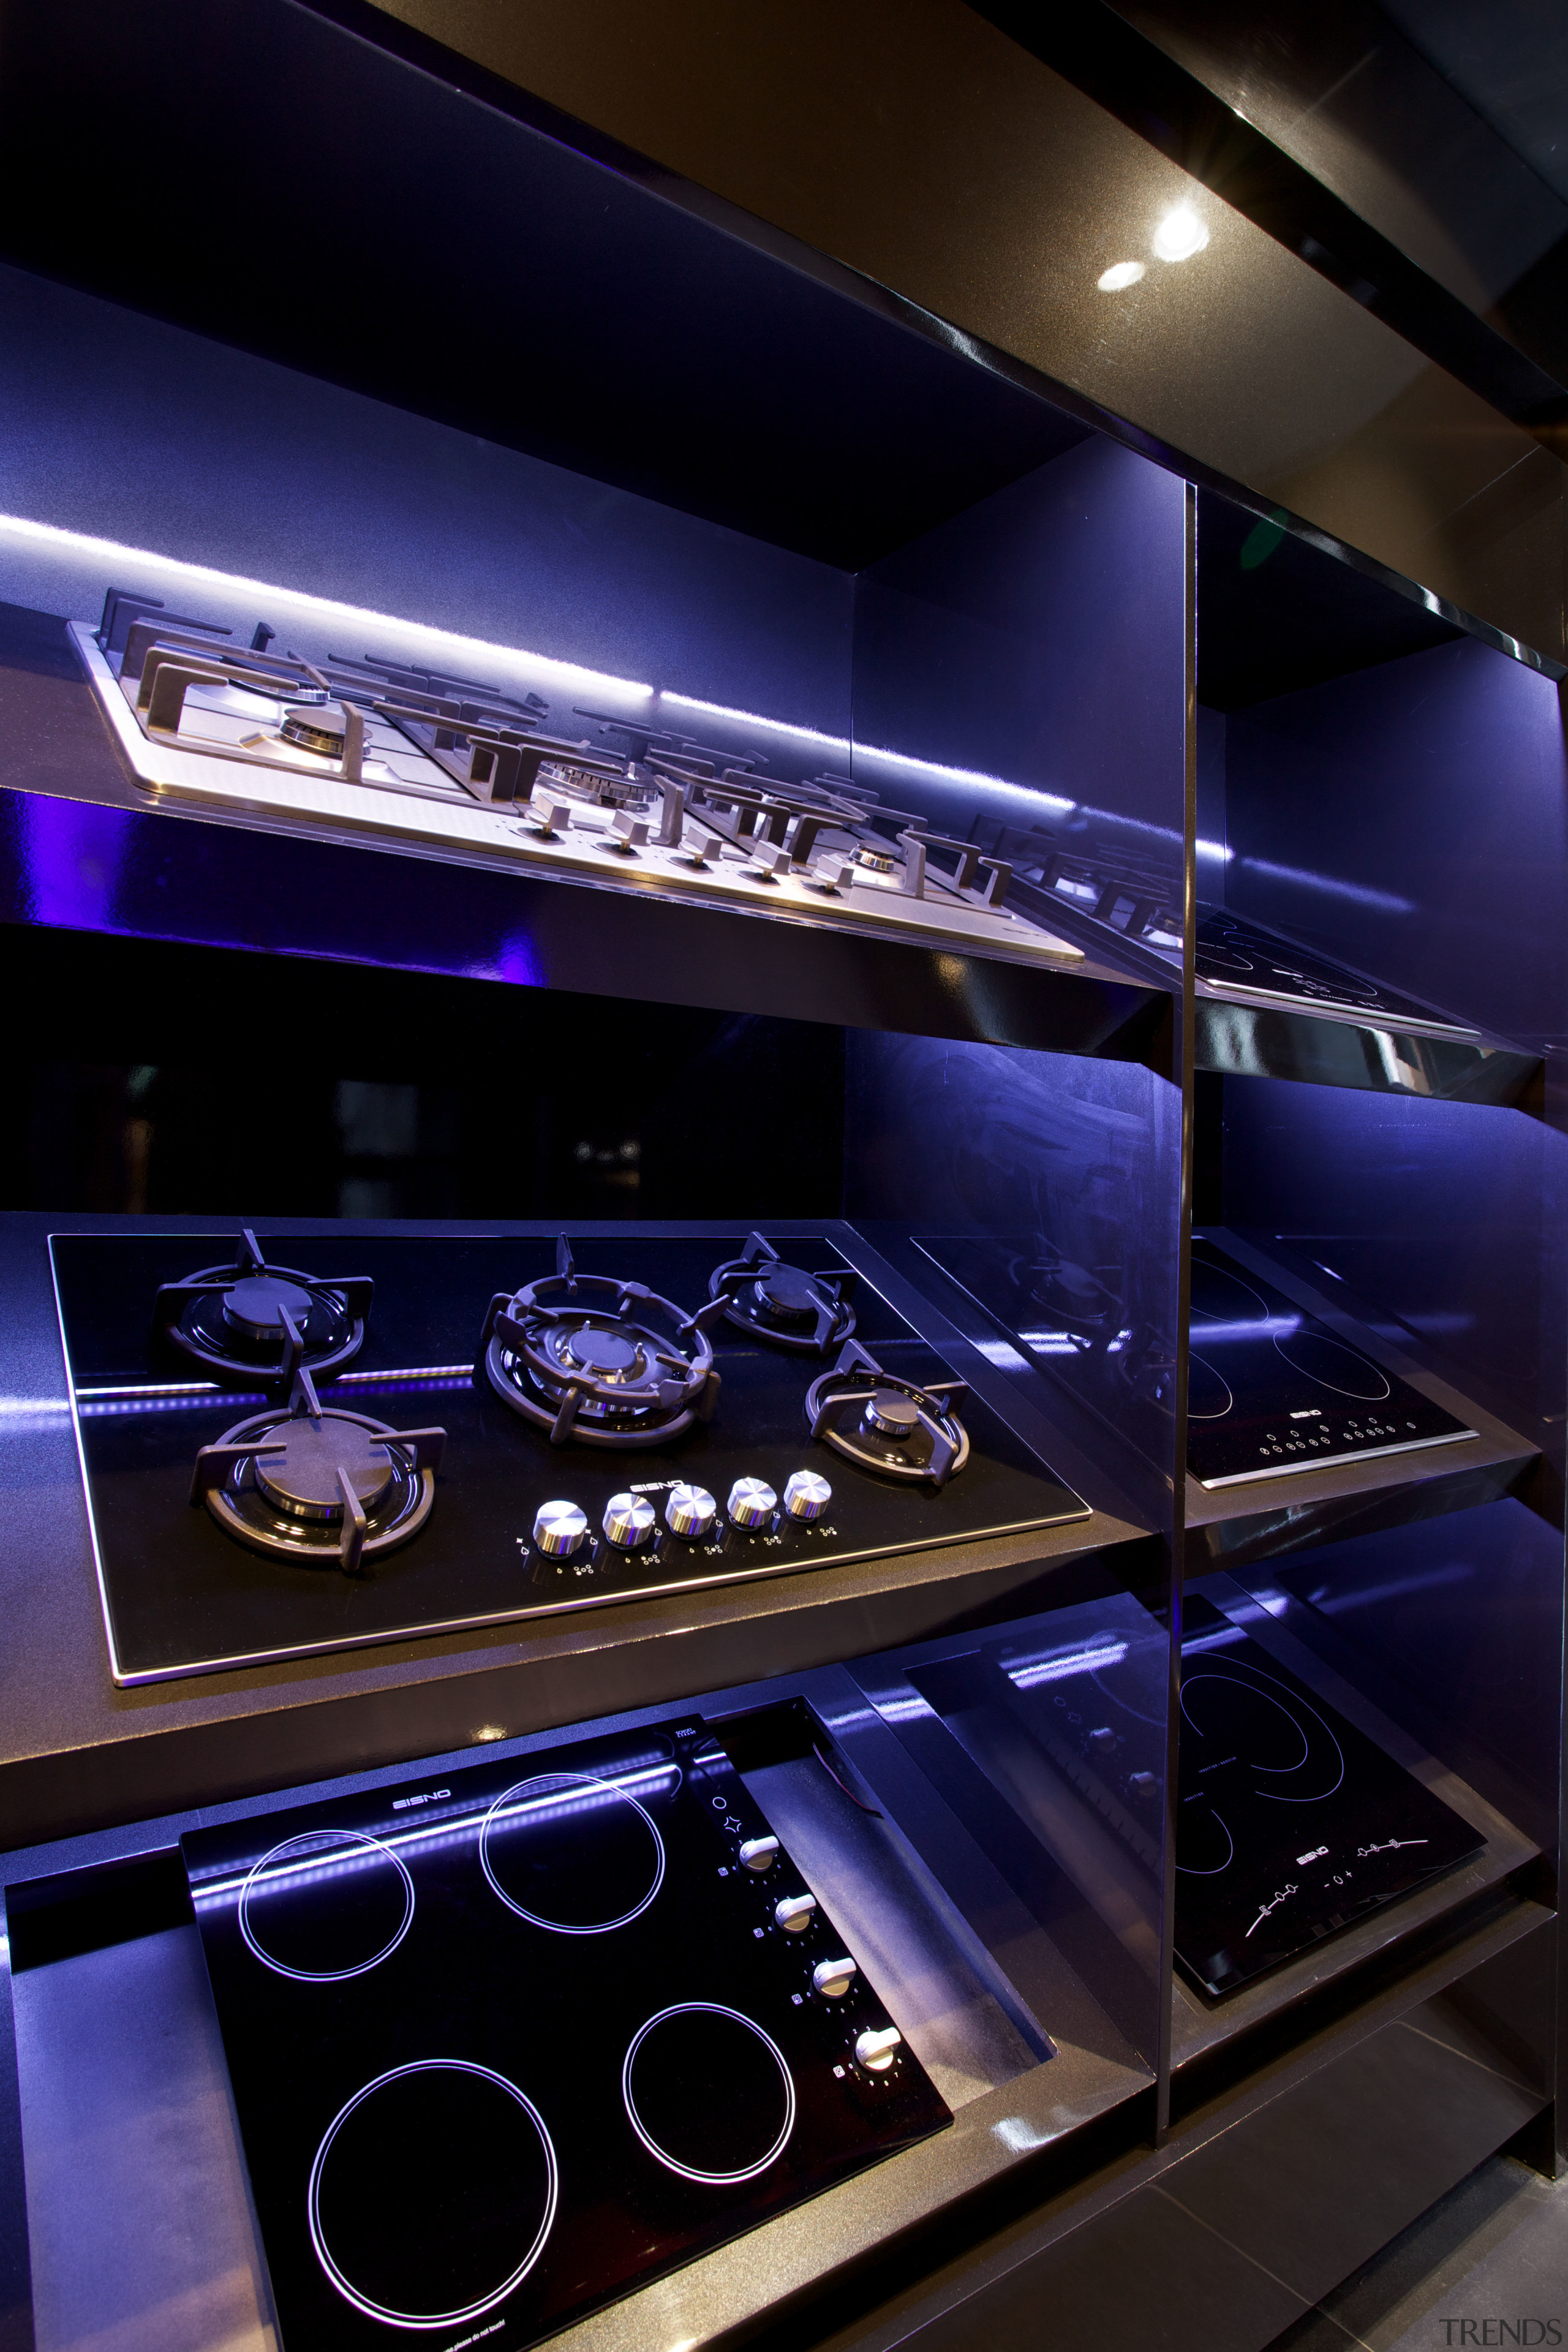 While the show space is modest the appliance black, blue